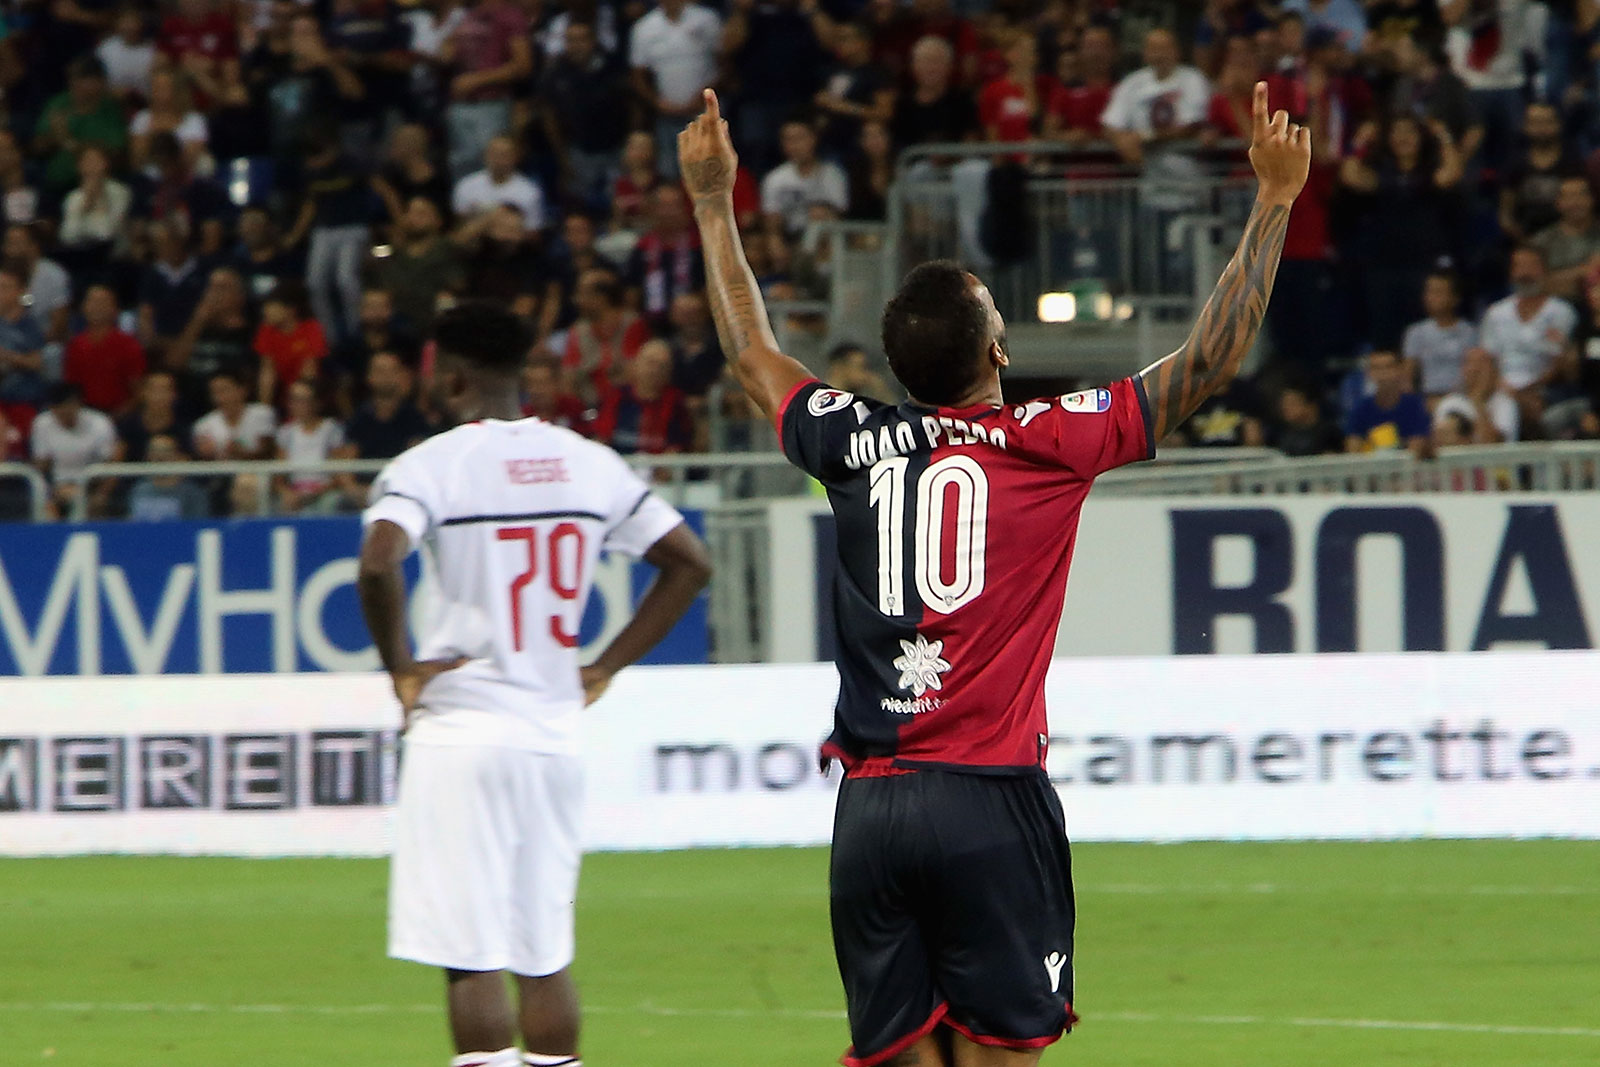 João Pedro celebrating during Cagliari-Milan at Sardegna Arena on September 16, 2018. (Photo by Enrico Locci/Getty Images)